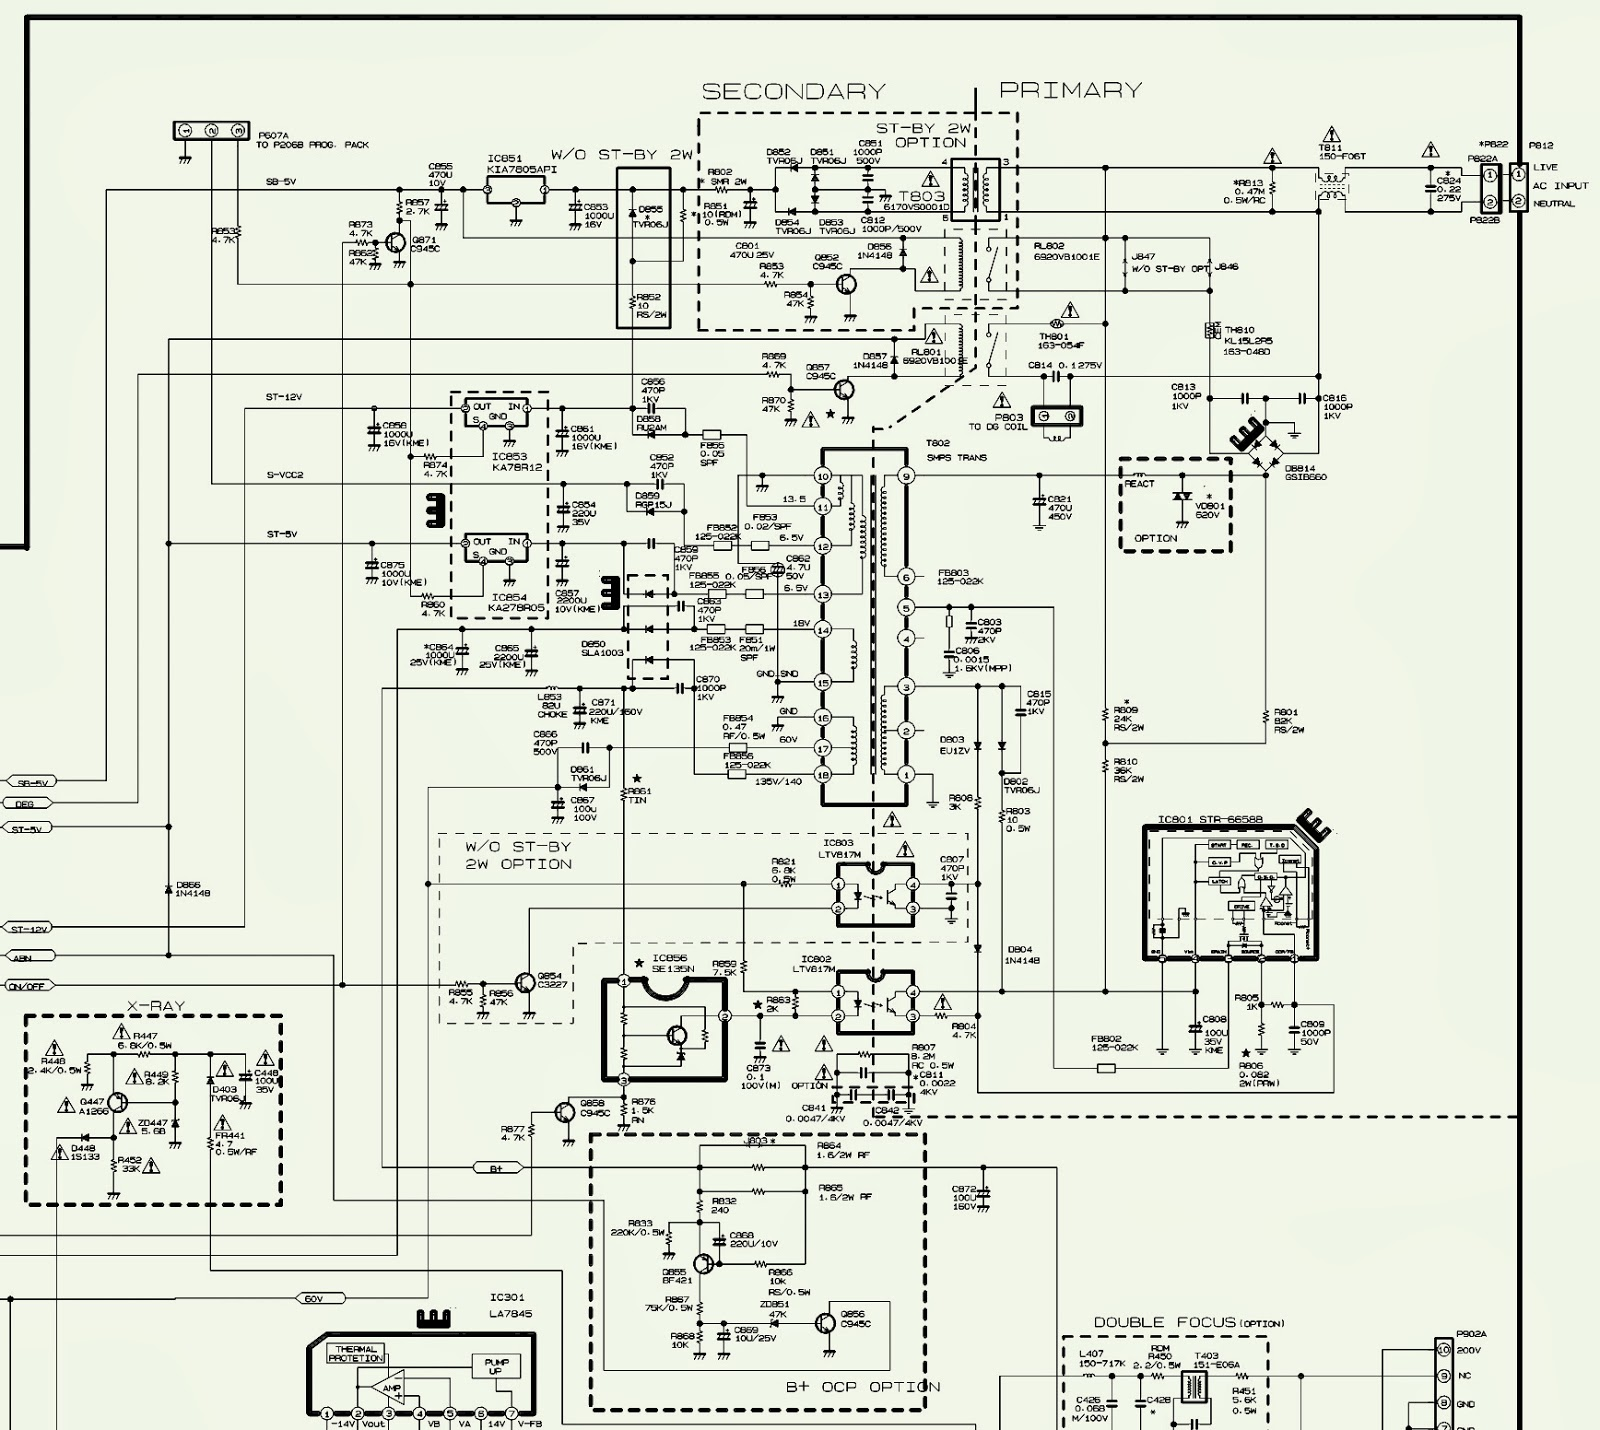 samsung tv power supply schematic power supply circuit diagram switch mode power supply circuit diagram also samsung microwave wiring [ 1600 x 1430 Pixel ]